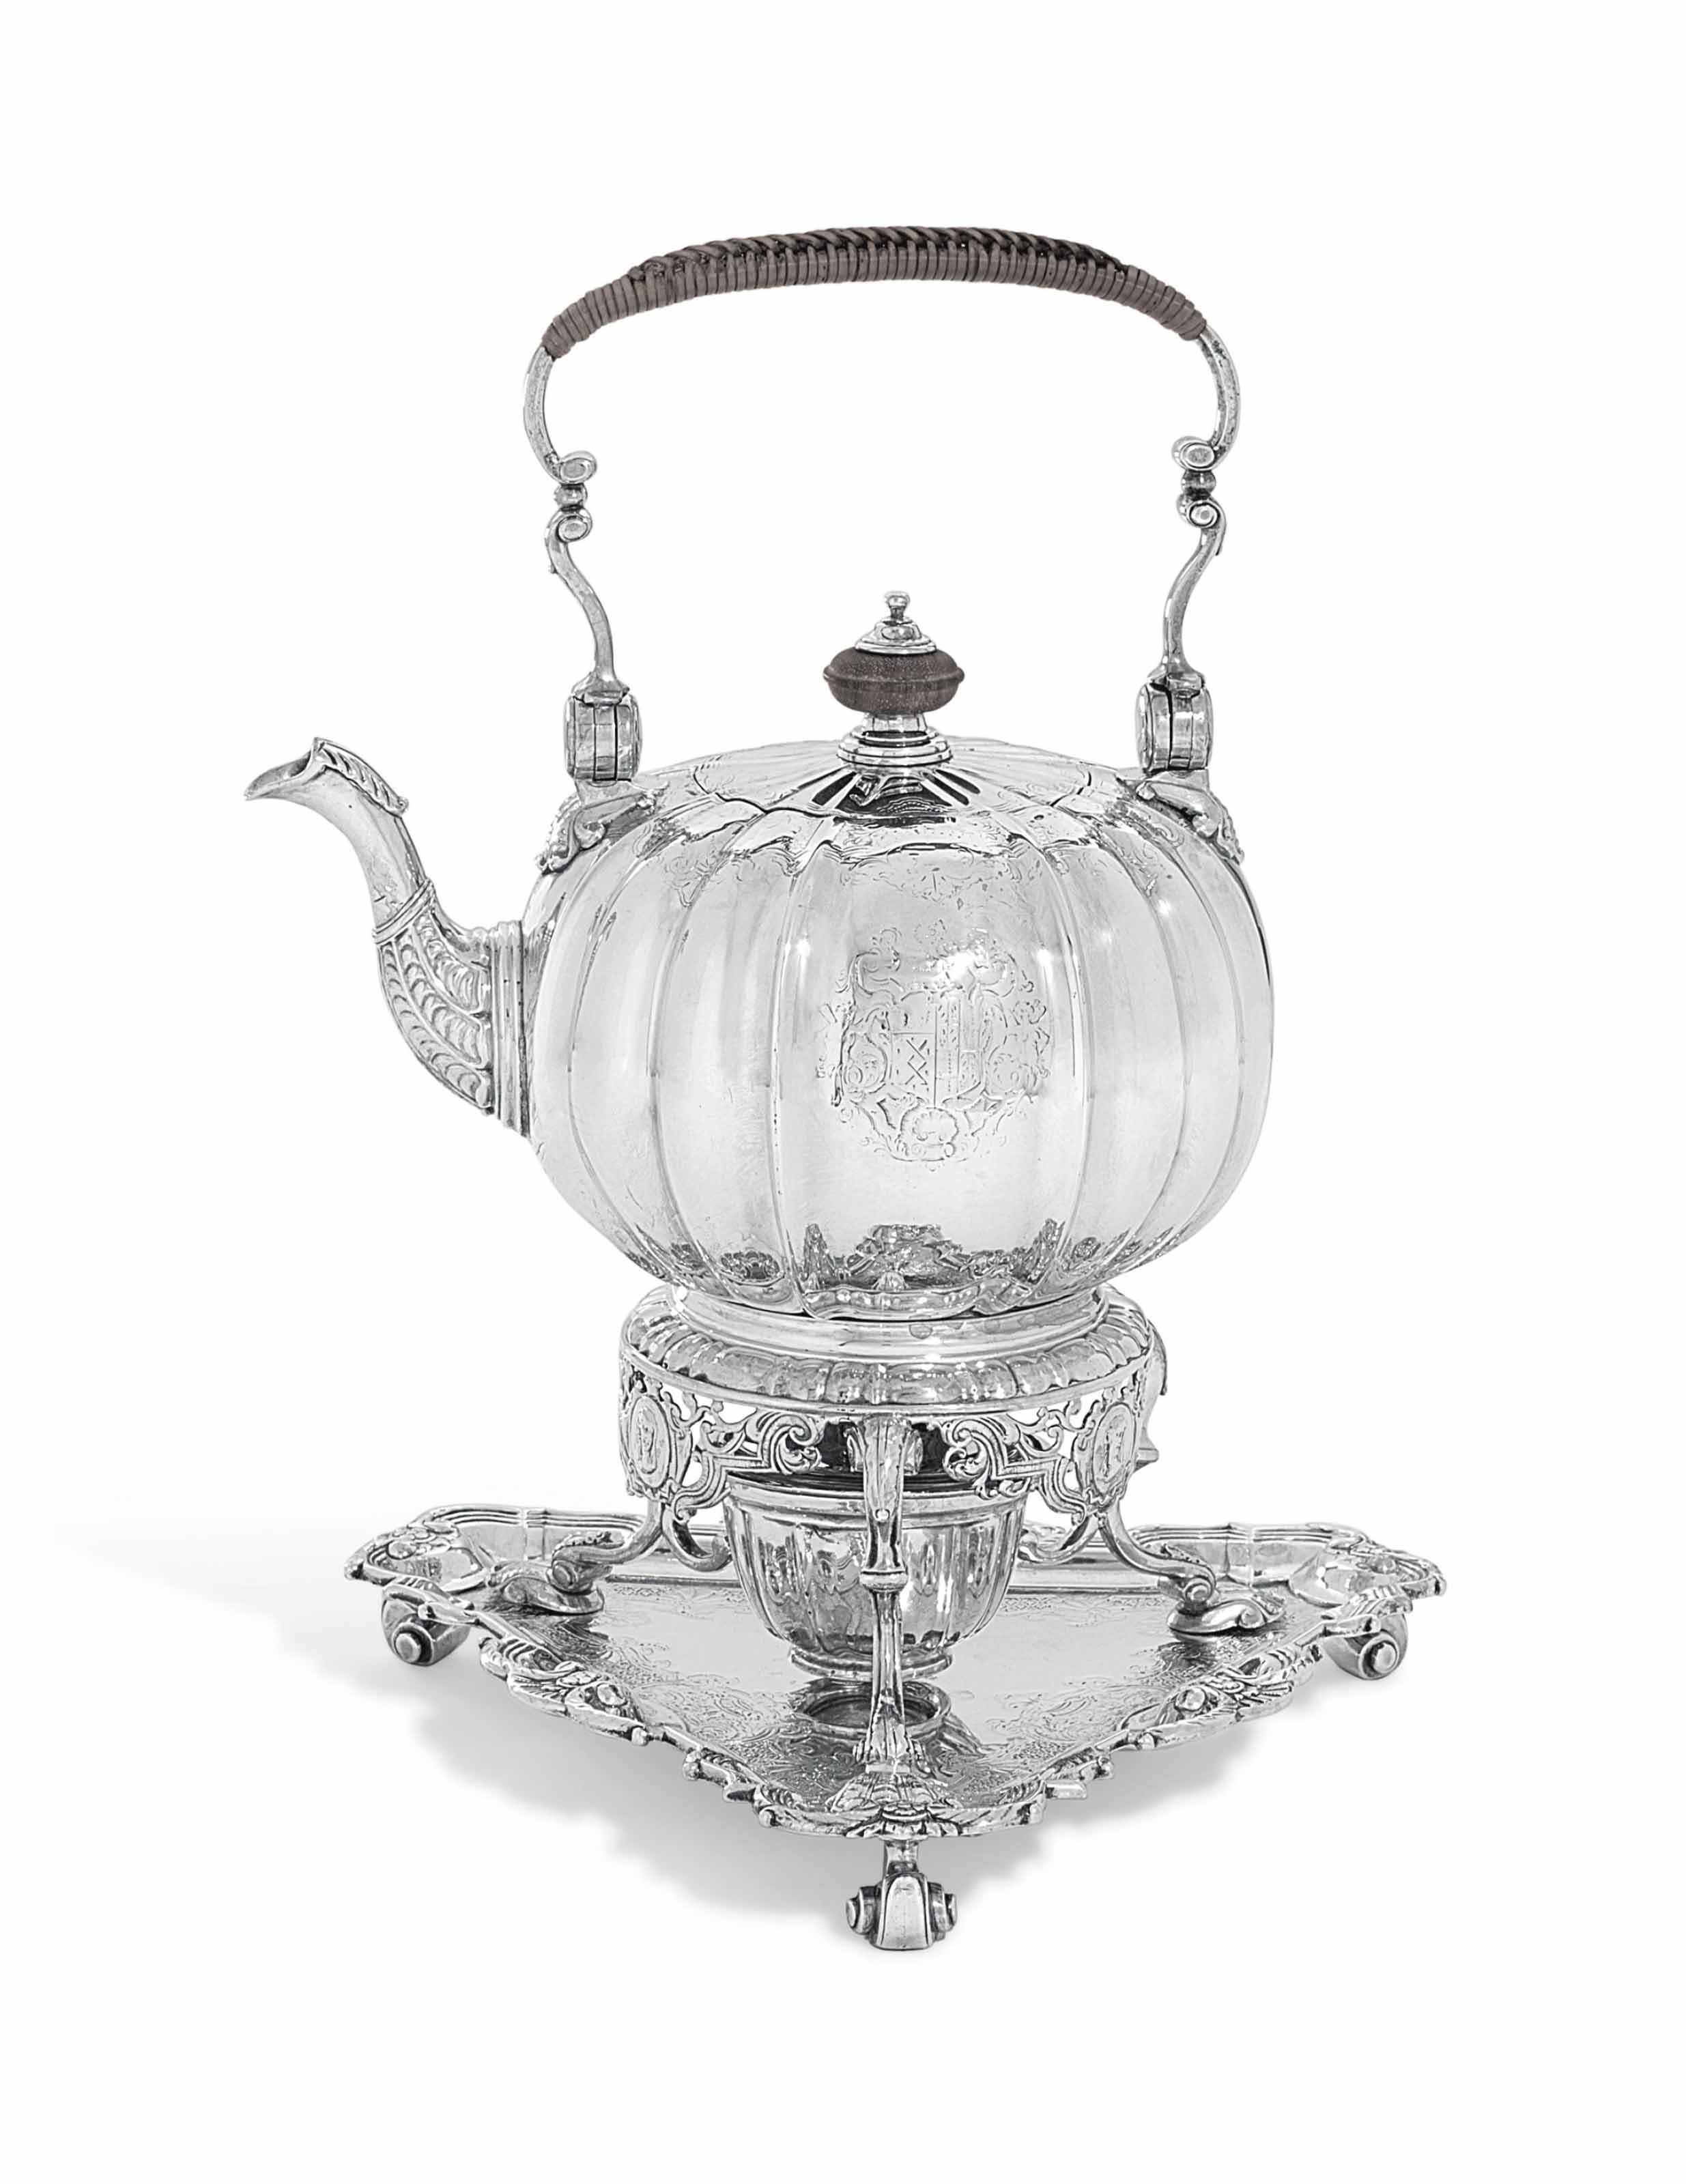 A GEORGE II SILVER KETTLE, STAND AND LAMP ON SALVER